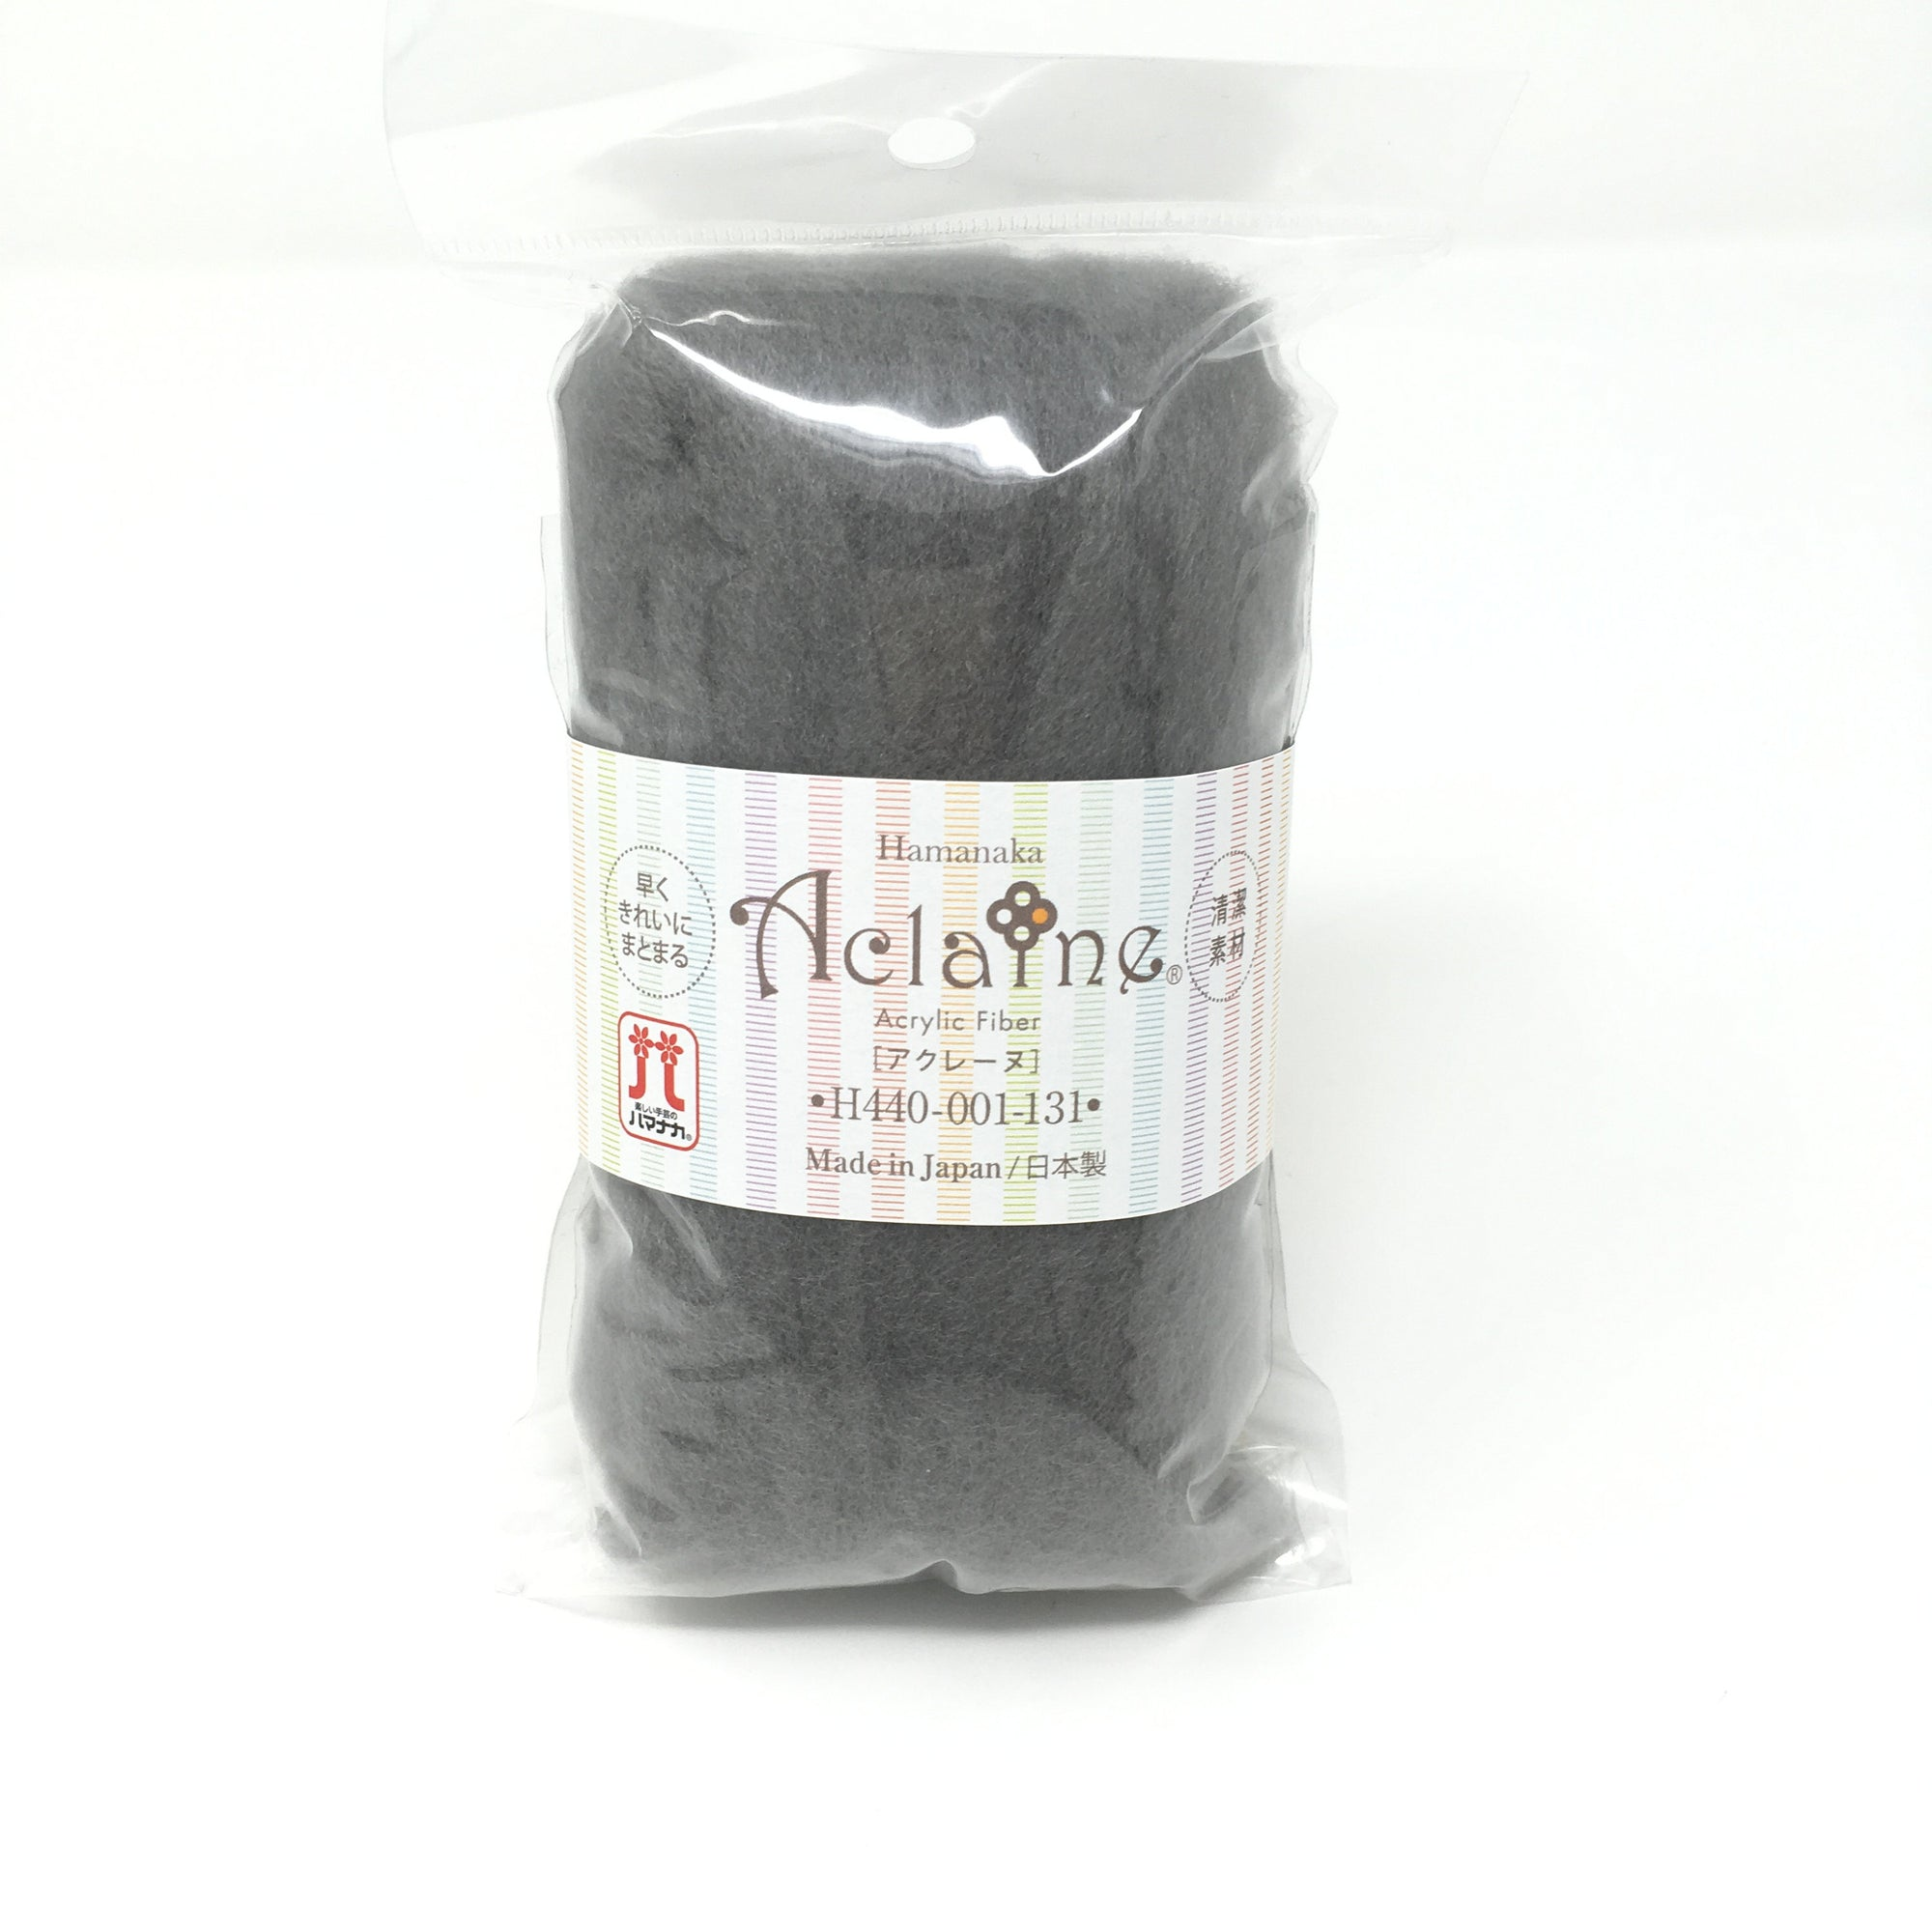 Japanese Hamanaka Aclaine Acyrlic Fibre for Needle Felting. 15g pack- Grey